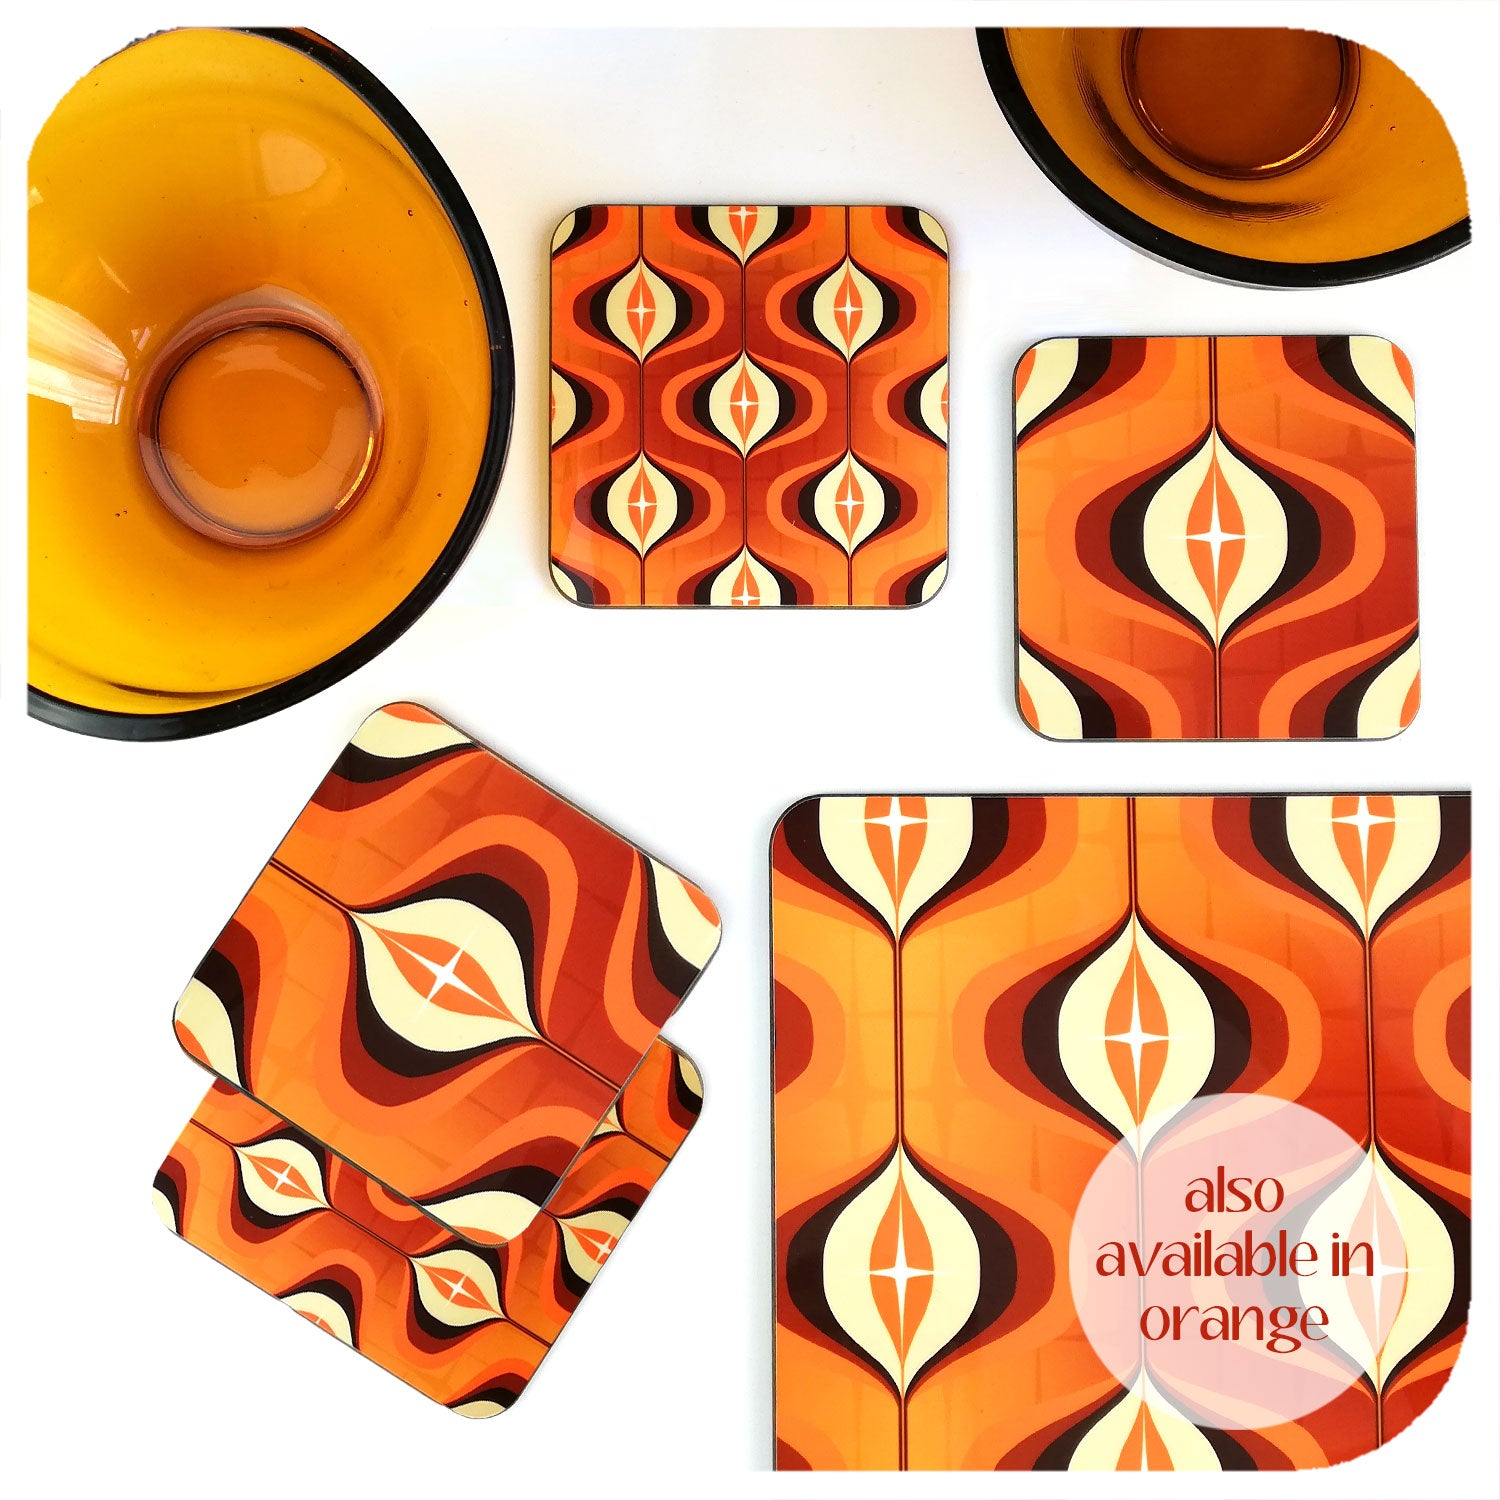 1970s Op Art Coasters & Placemat in Orange | The Inkabilly Emporium